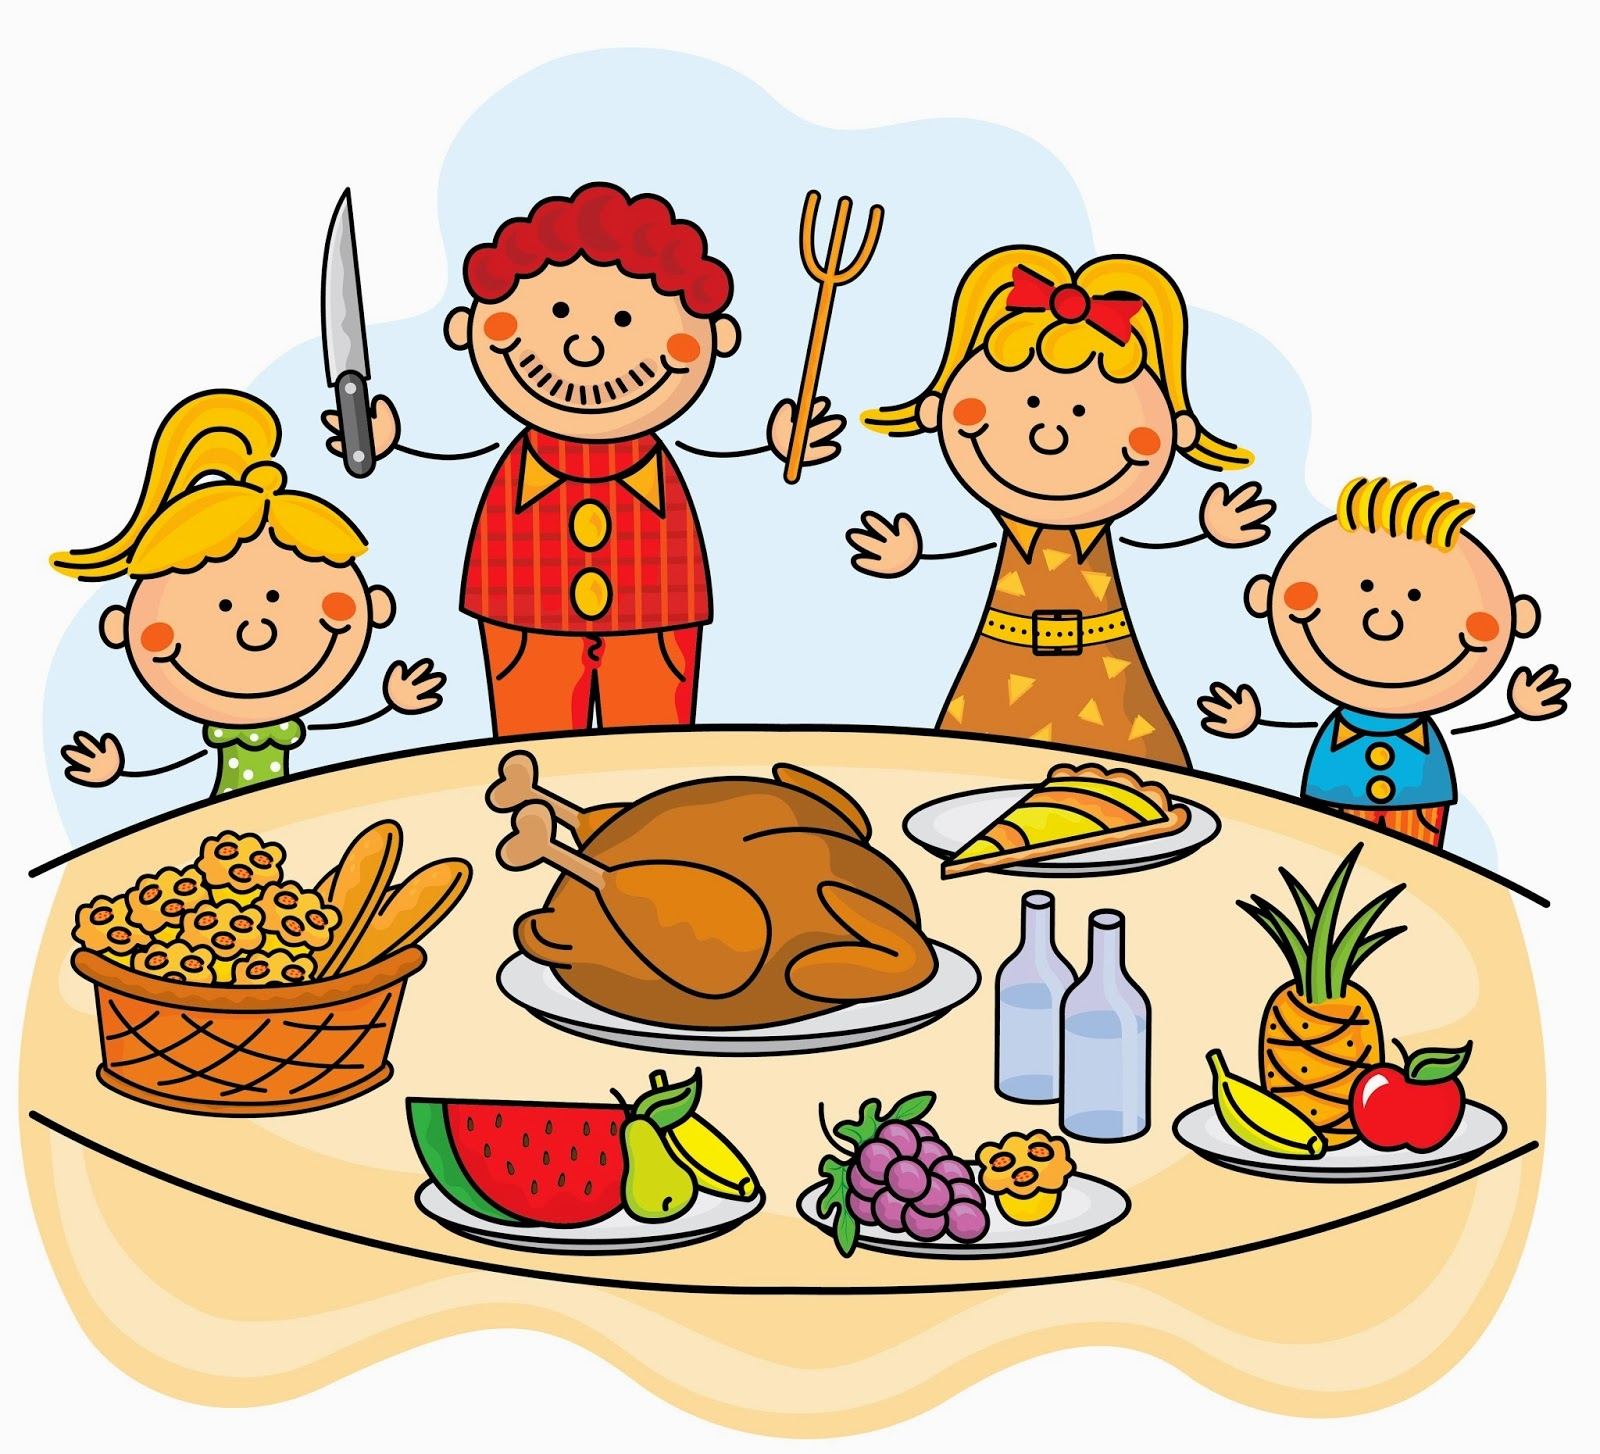 thanksgiving dinner clipart at getdrawings com free for personal rh getdrawings com dinner clip art border diner clipart free